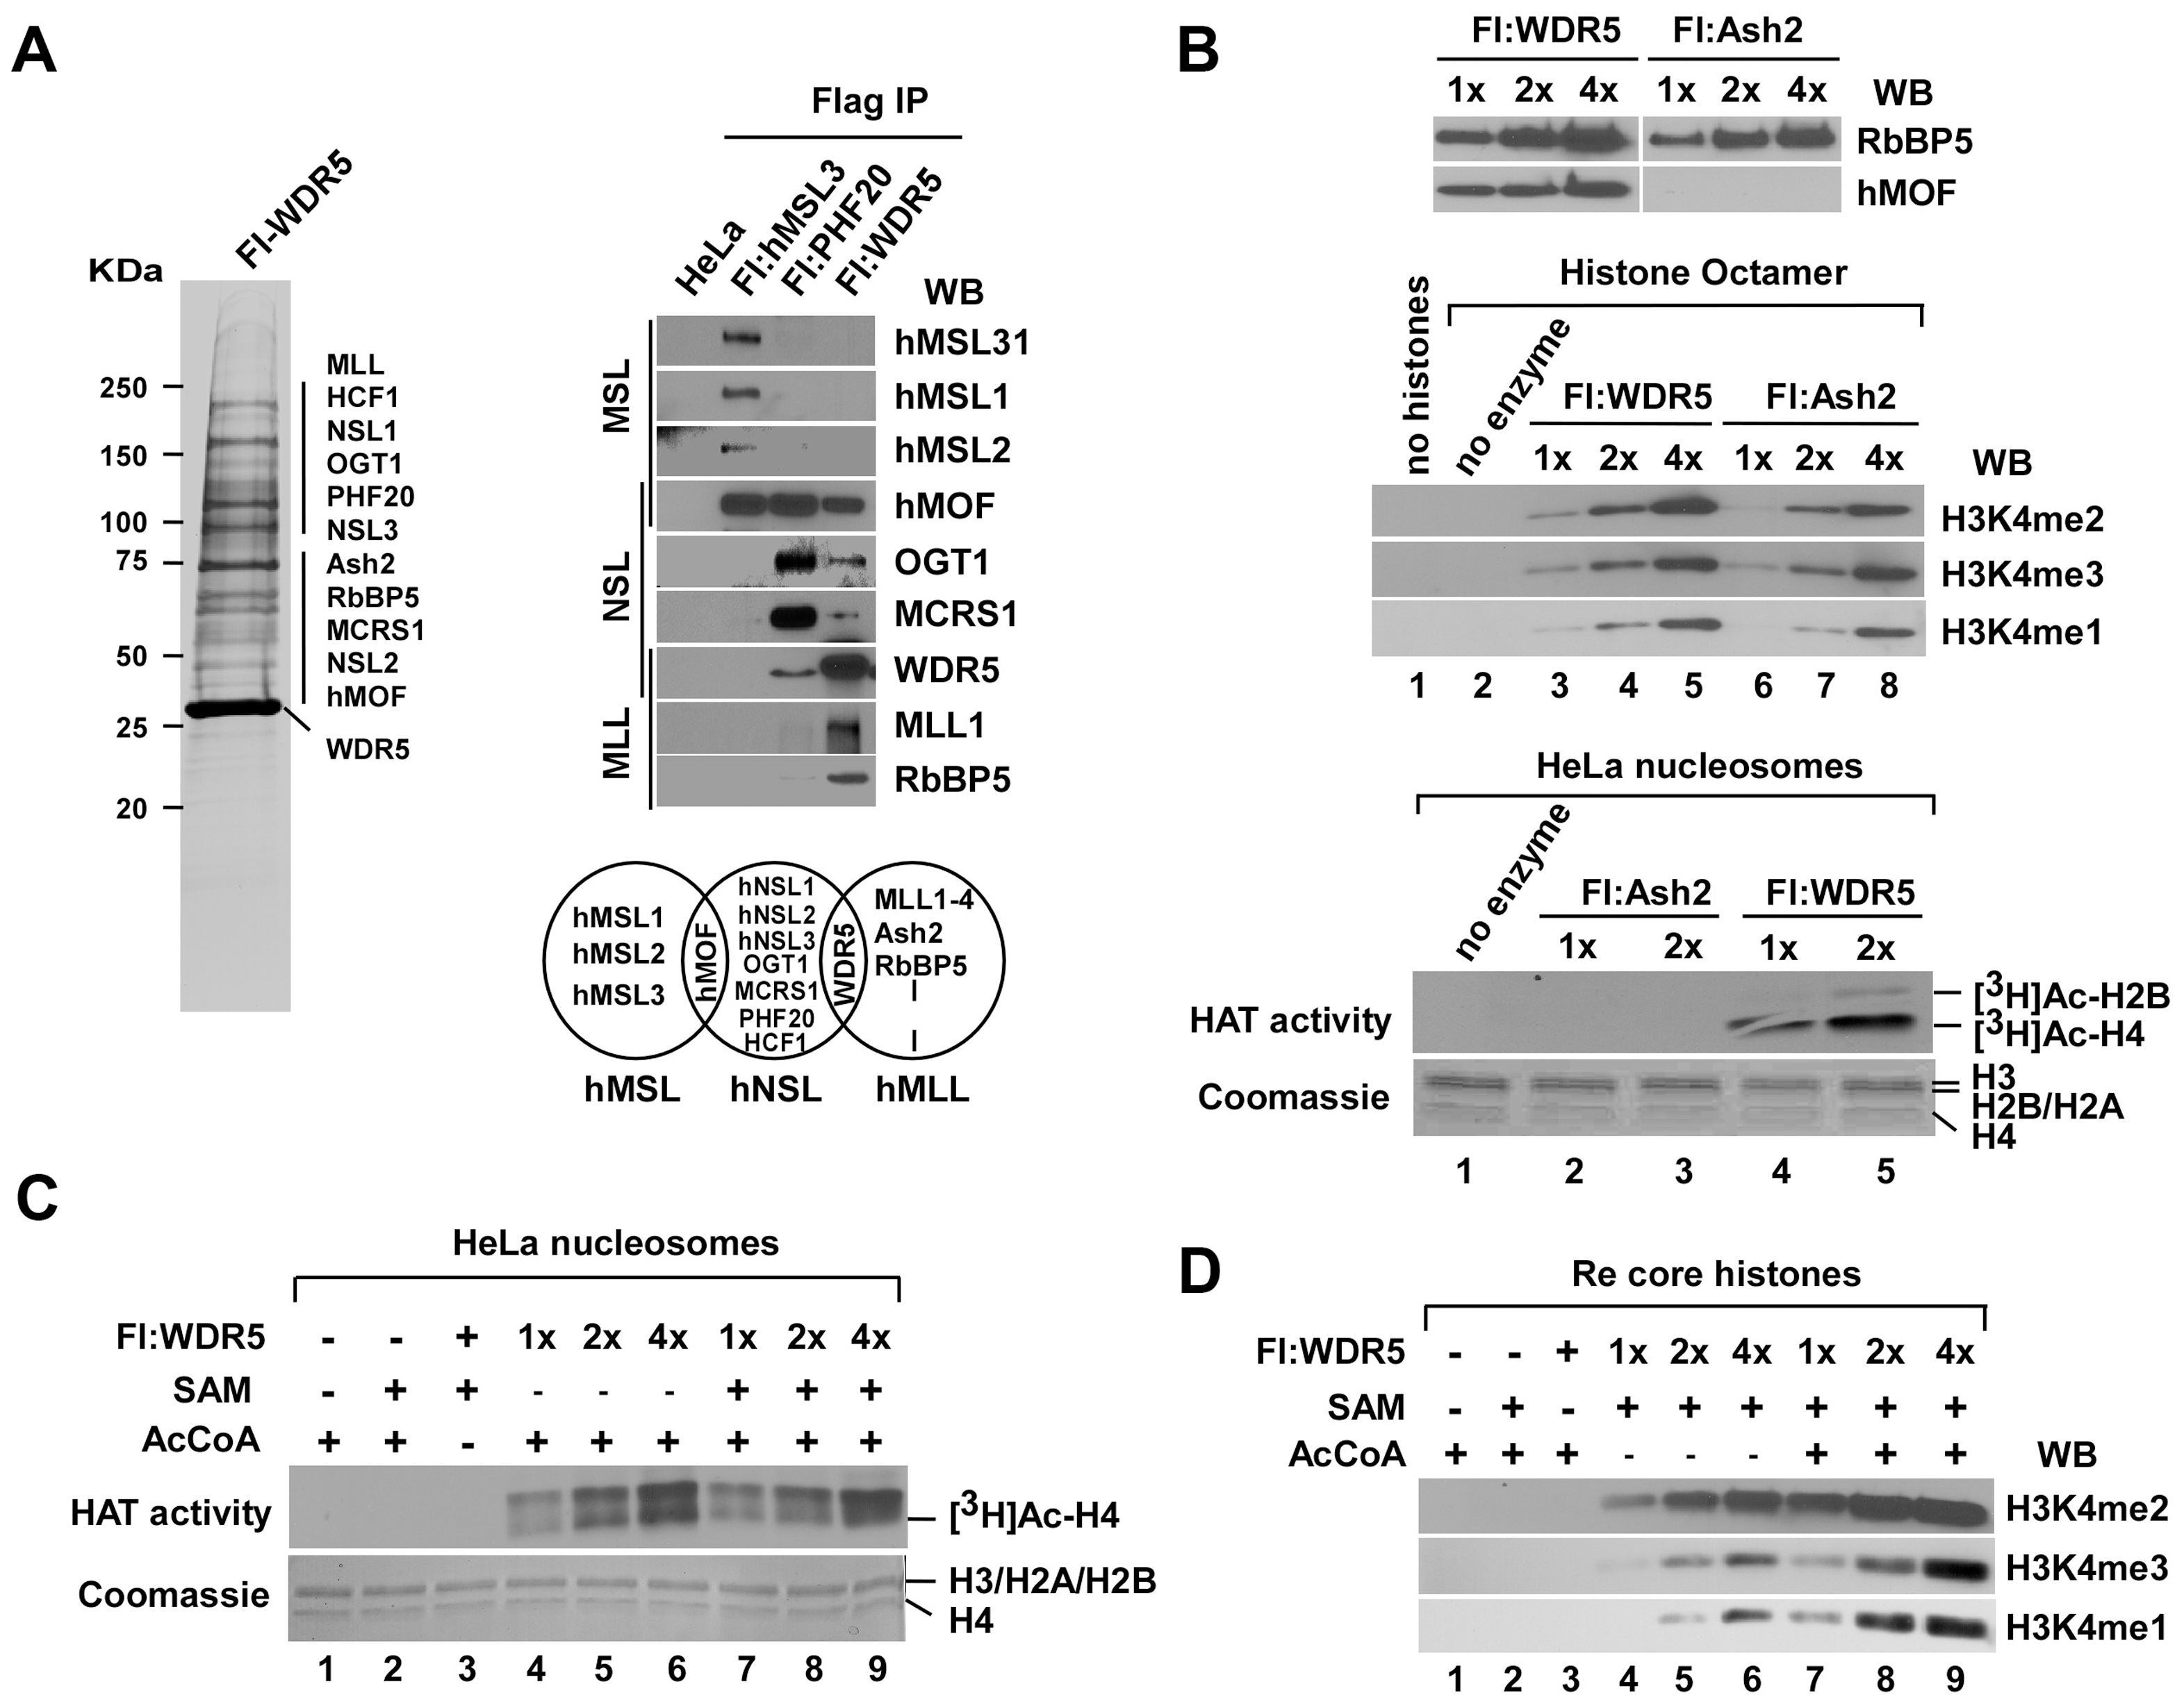 HAT activity facilitates histone H3K4 methylation by WDR5-containing complex <i>in vitro</i>.